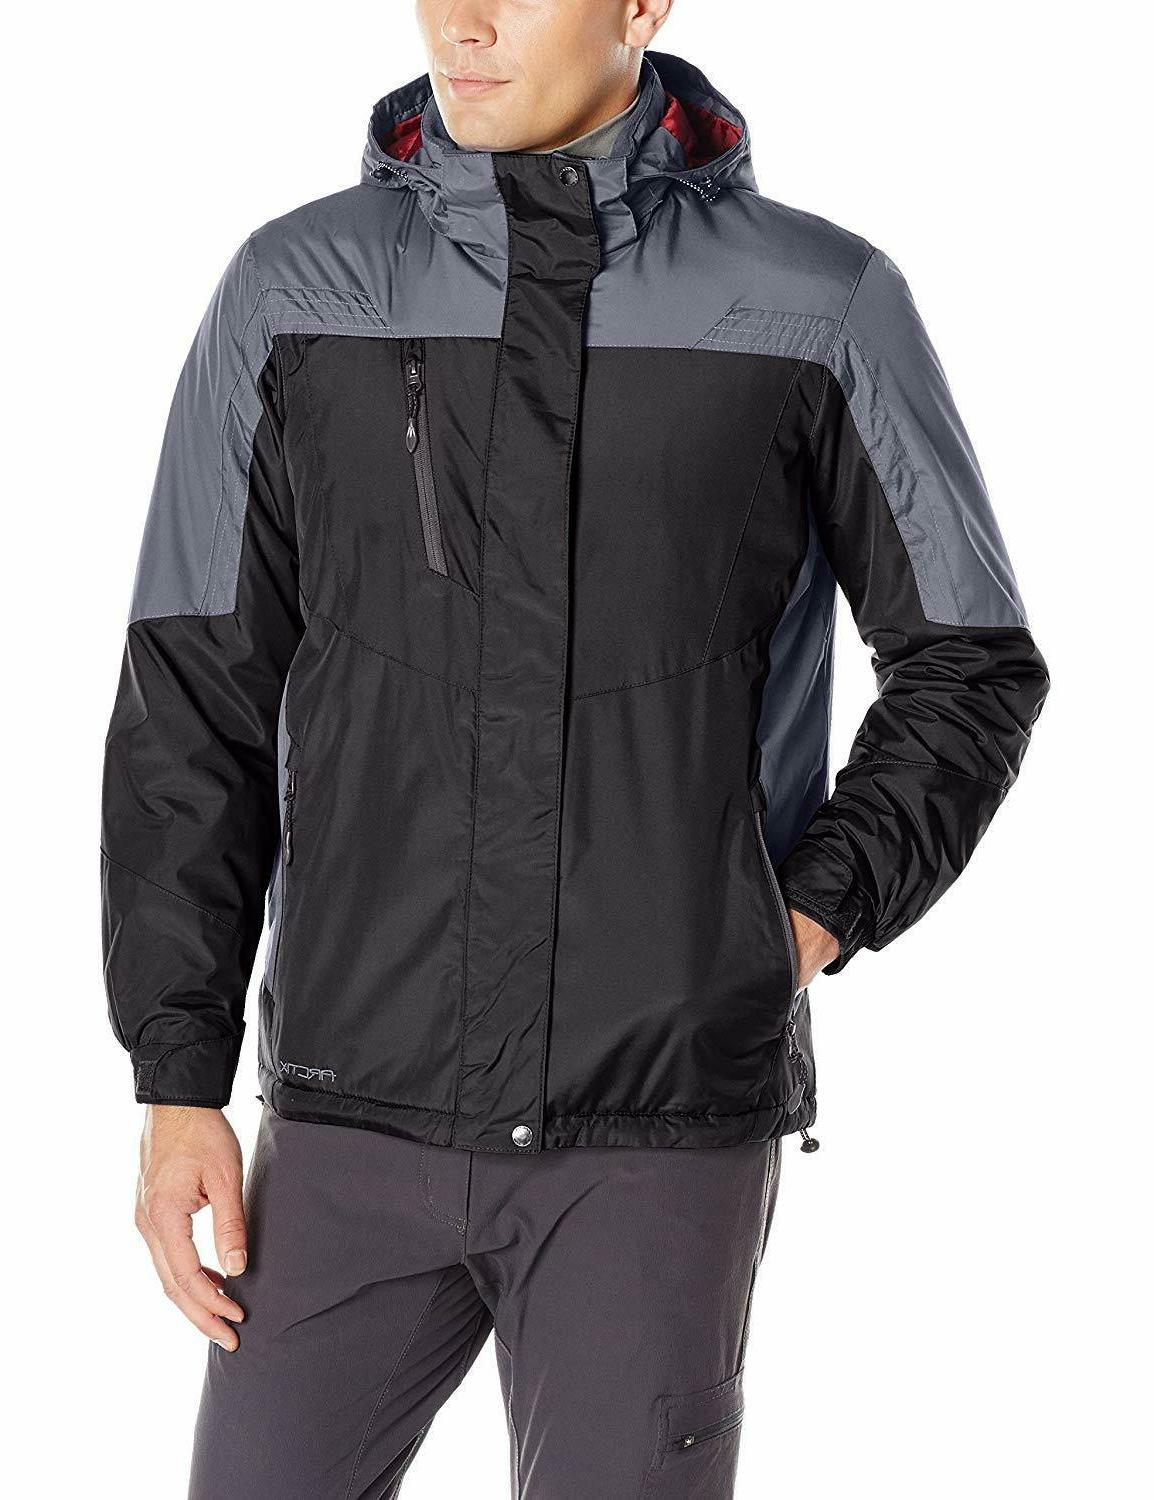 NEW Arctix Men's Blackstone Insulated Jacket, X-Large Charco